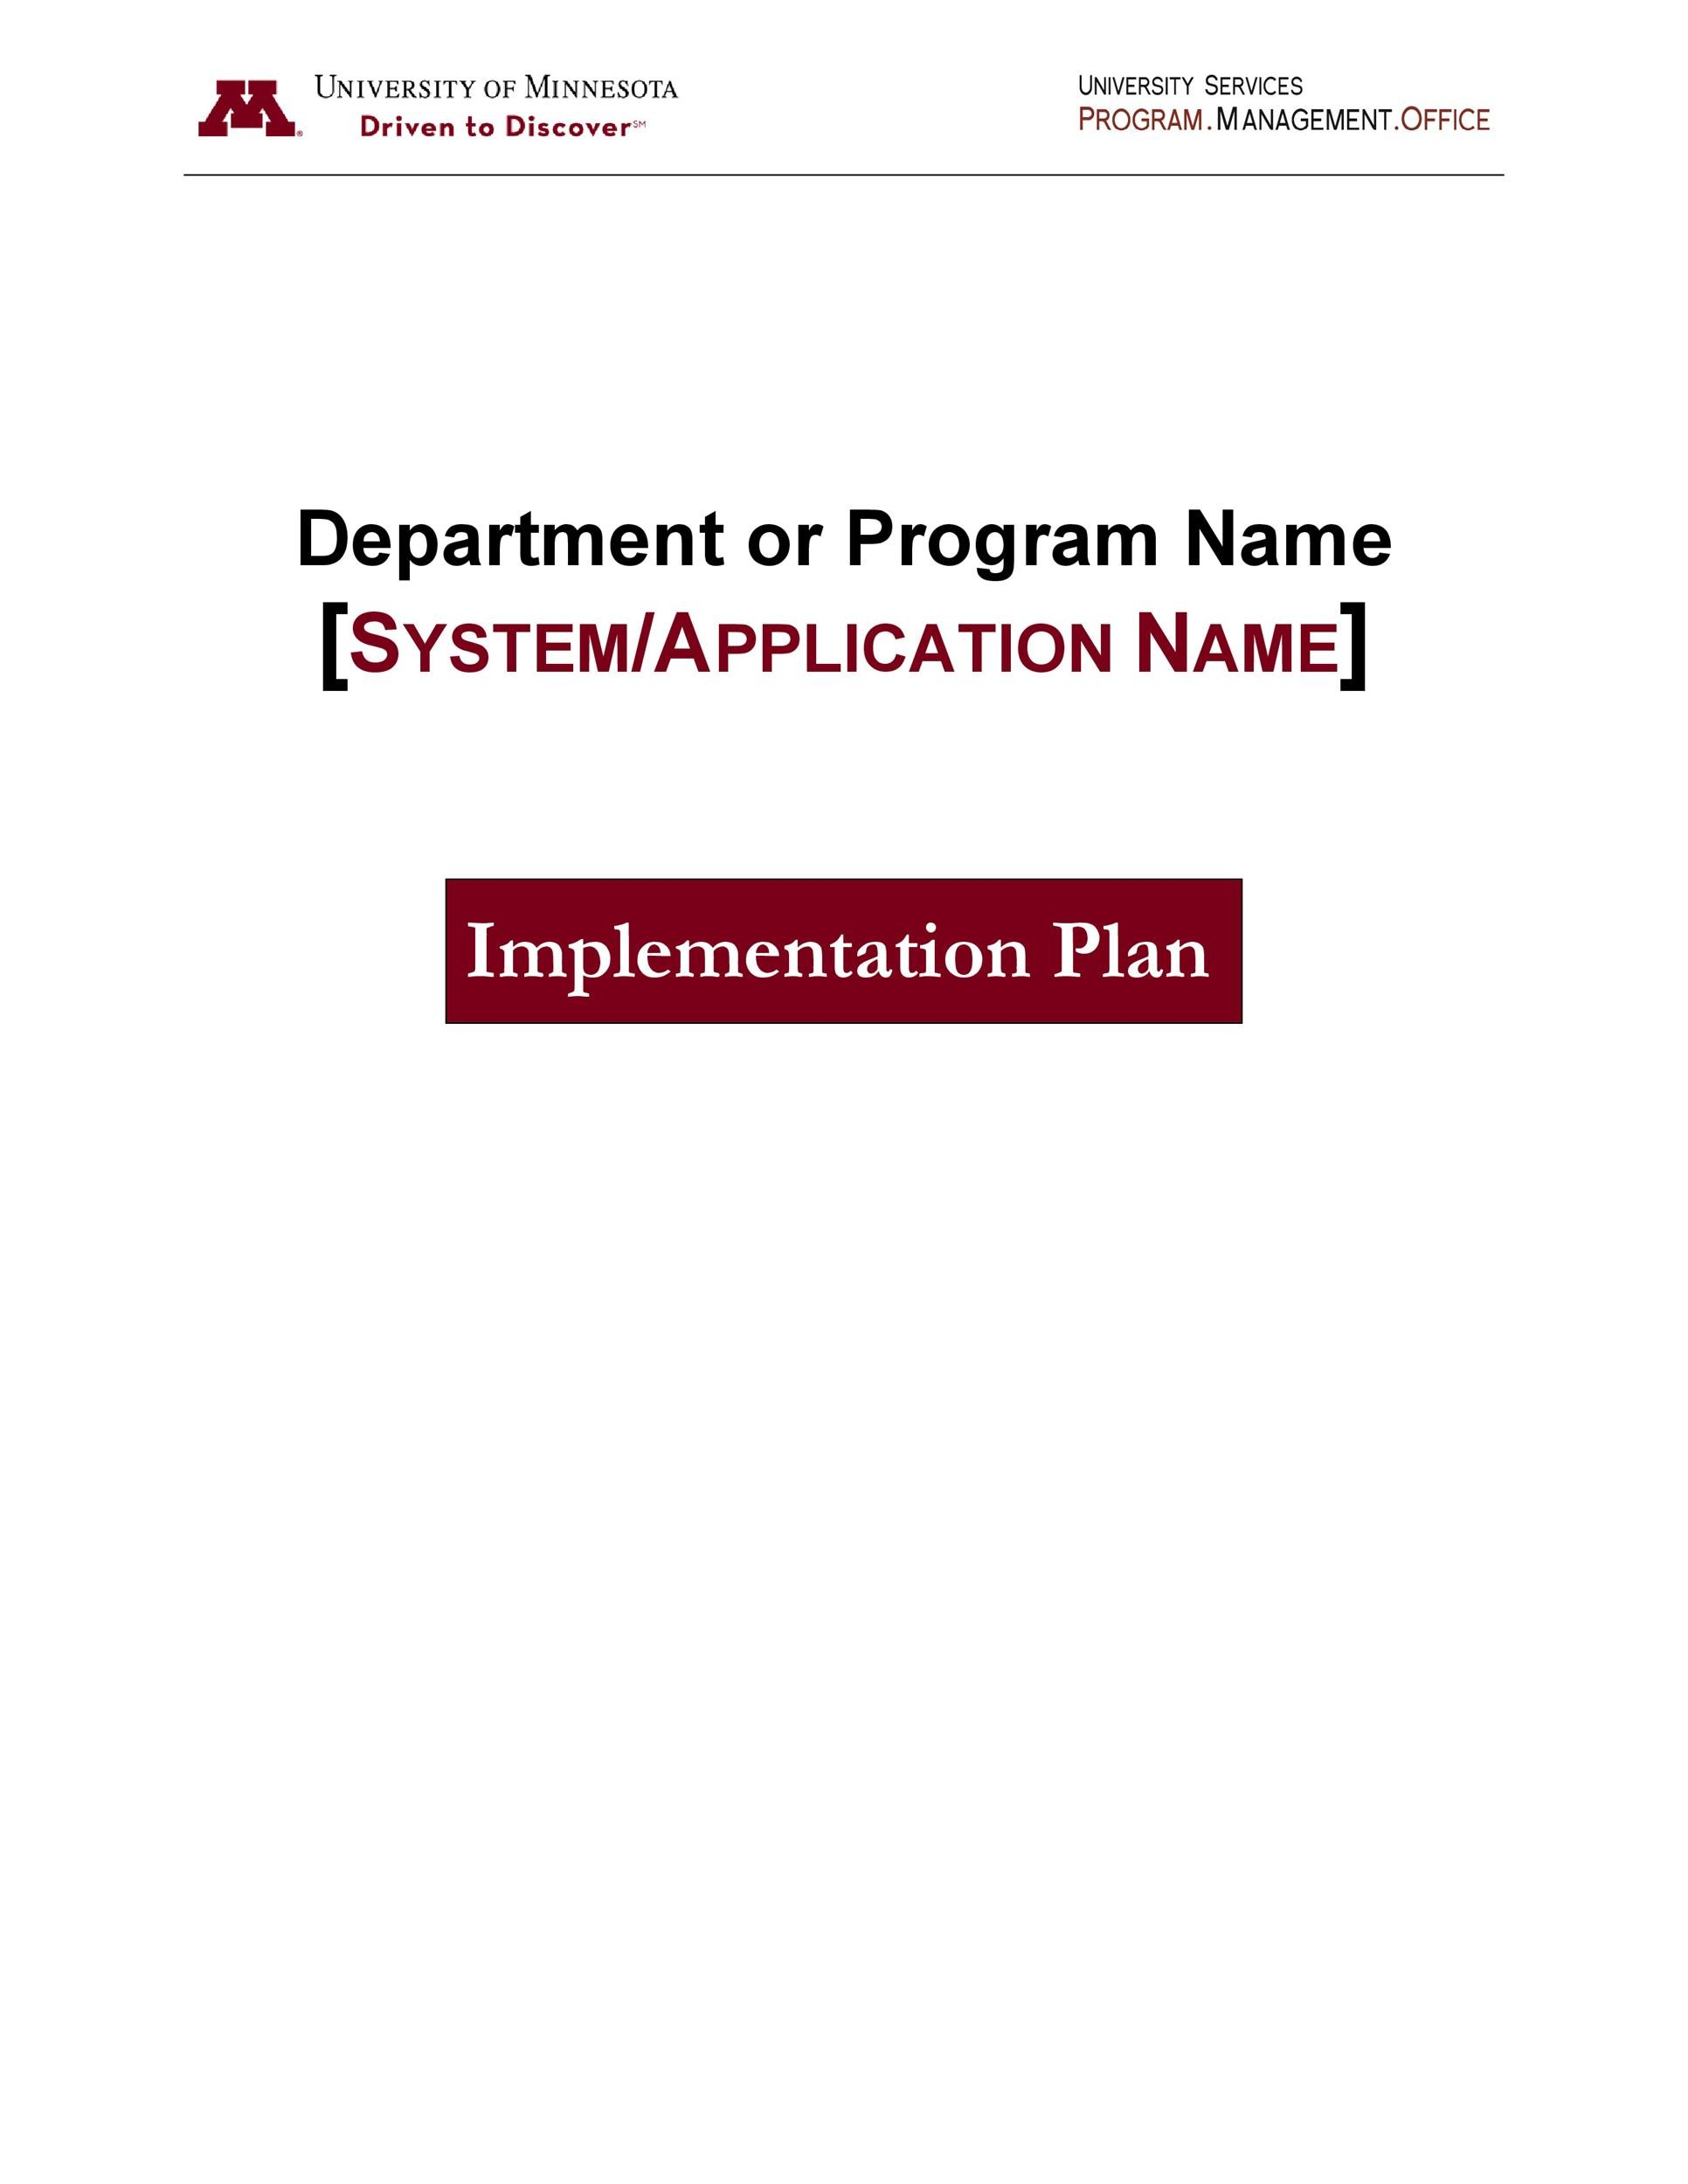 Free implementation plan 20